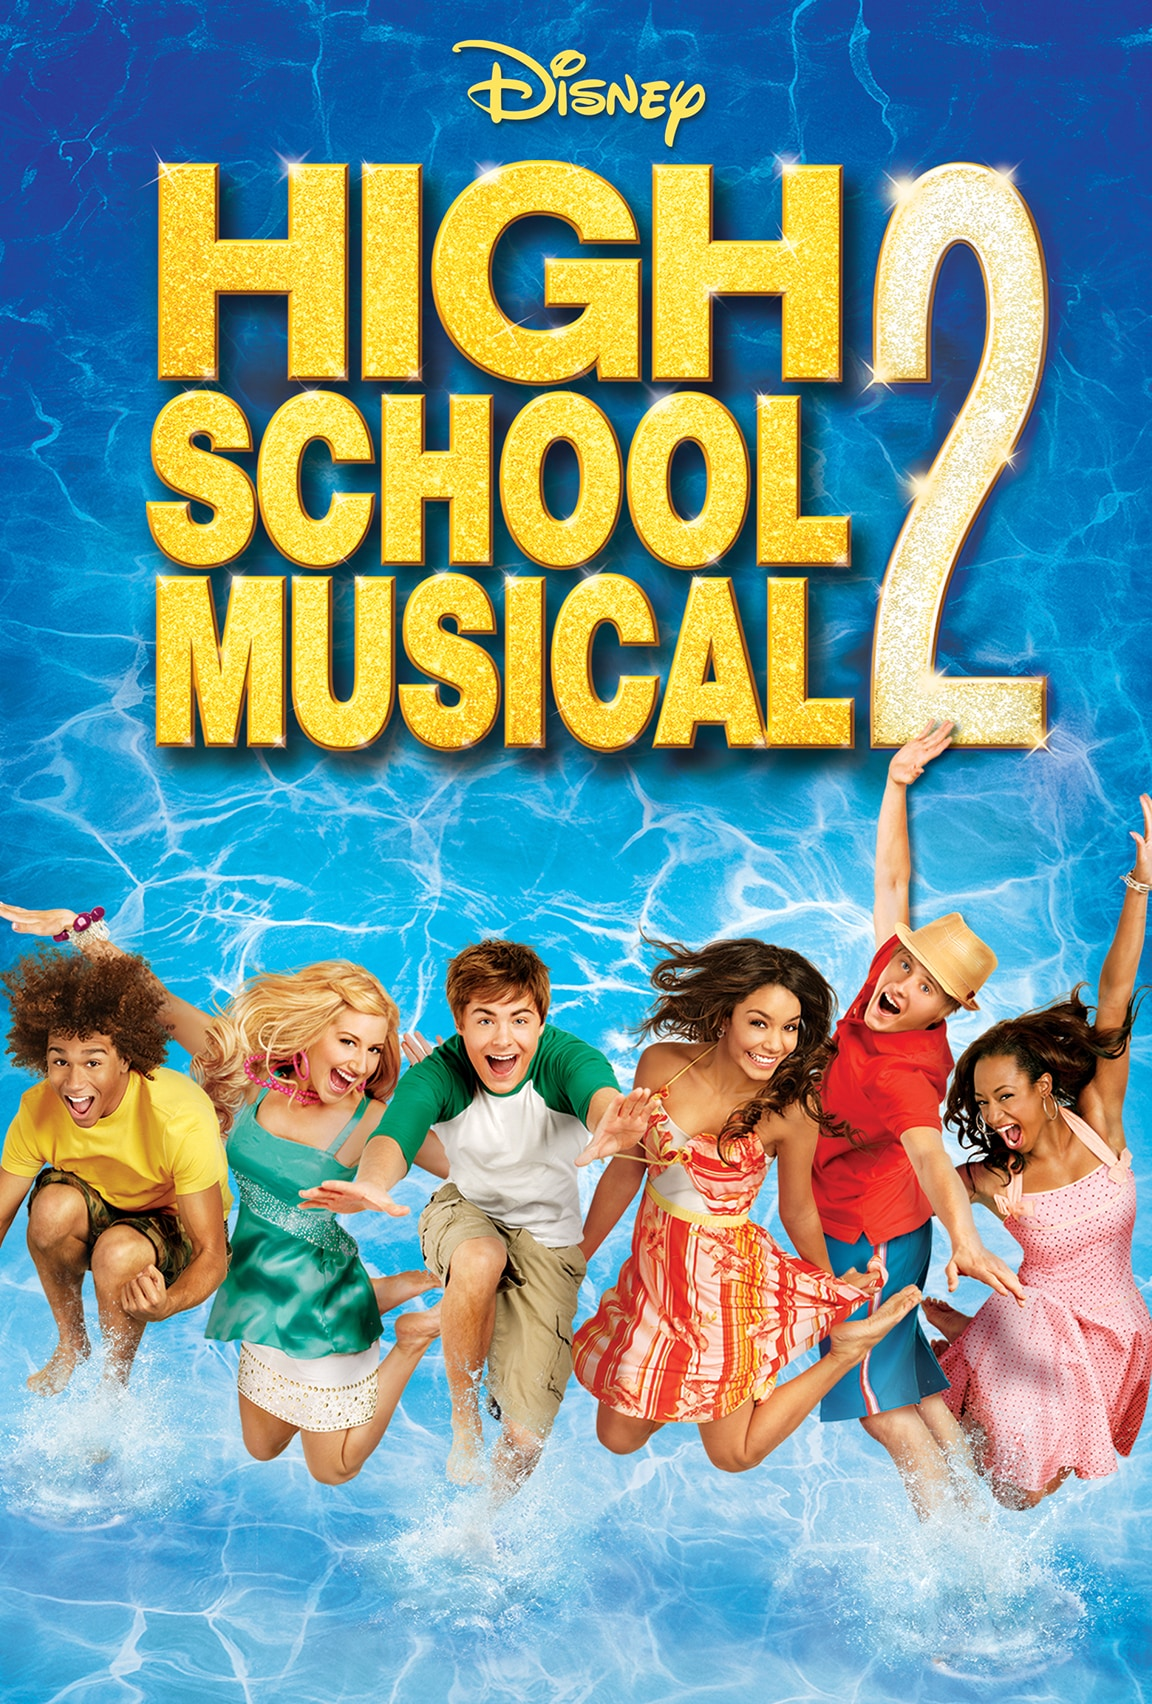 High School Musical 2 on Disney Plus